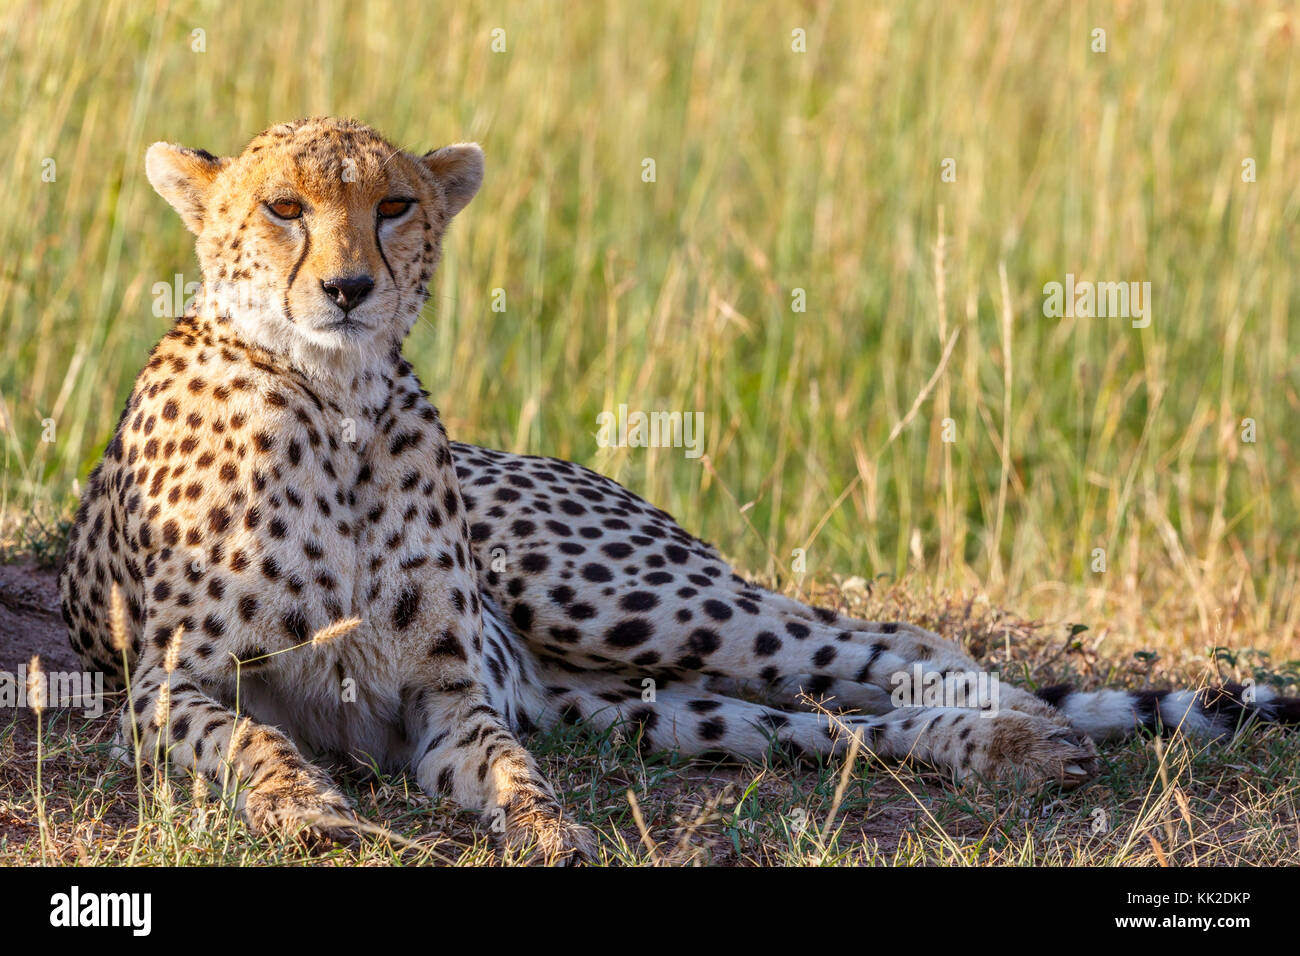 Cheetah lying in the grass and looking at the camera - Stock Image